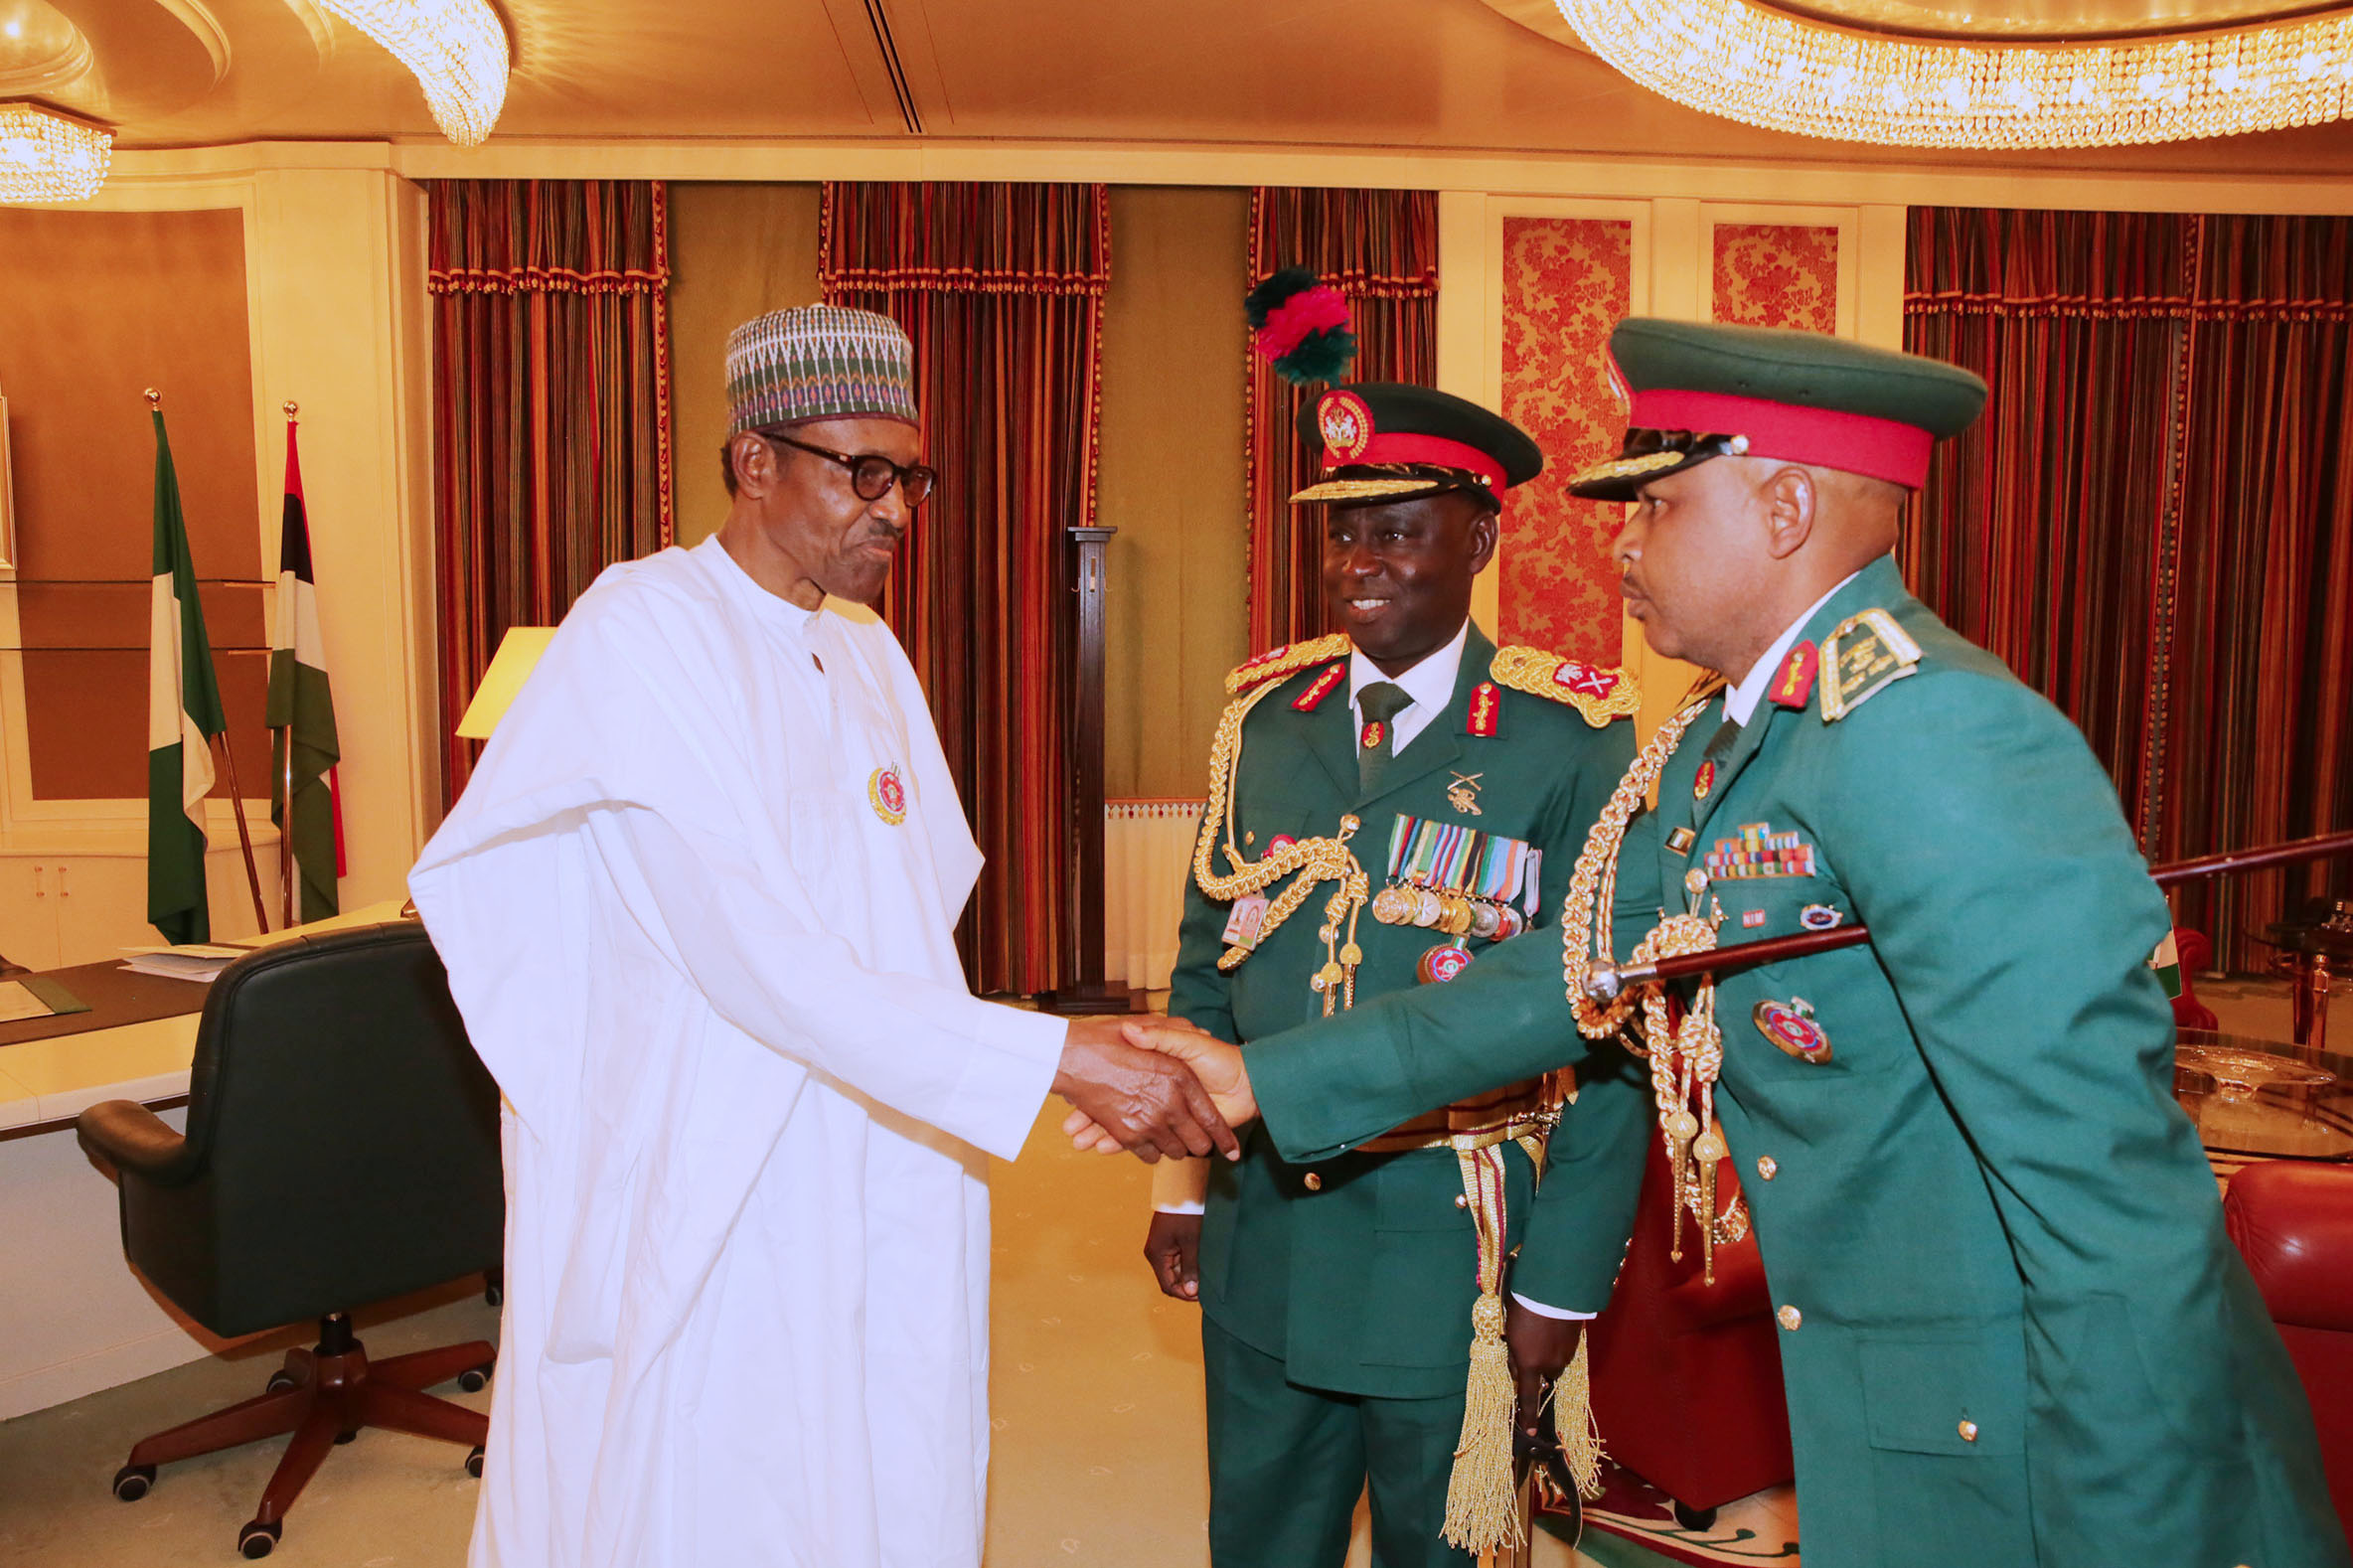 PRESIDENT BUHARI RECEIVES INCOMING AND OUTGOING COMM GUARDS BRIGADE 2. President Muhammadu Buhari receives the The Incoming Commander, Guards Brigade, Brig Gen Umar Thomas Musa (Right) and the Out-Going Commander Guards Brigade, Major General MS Yusuf at the State House in Abuja. PHOTO; SUNDAY AGHAEZE. JAN 16 2018